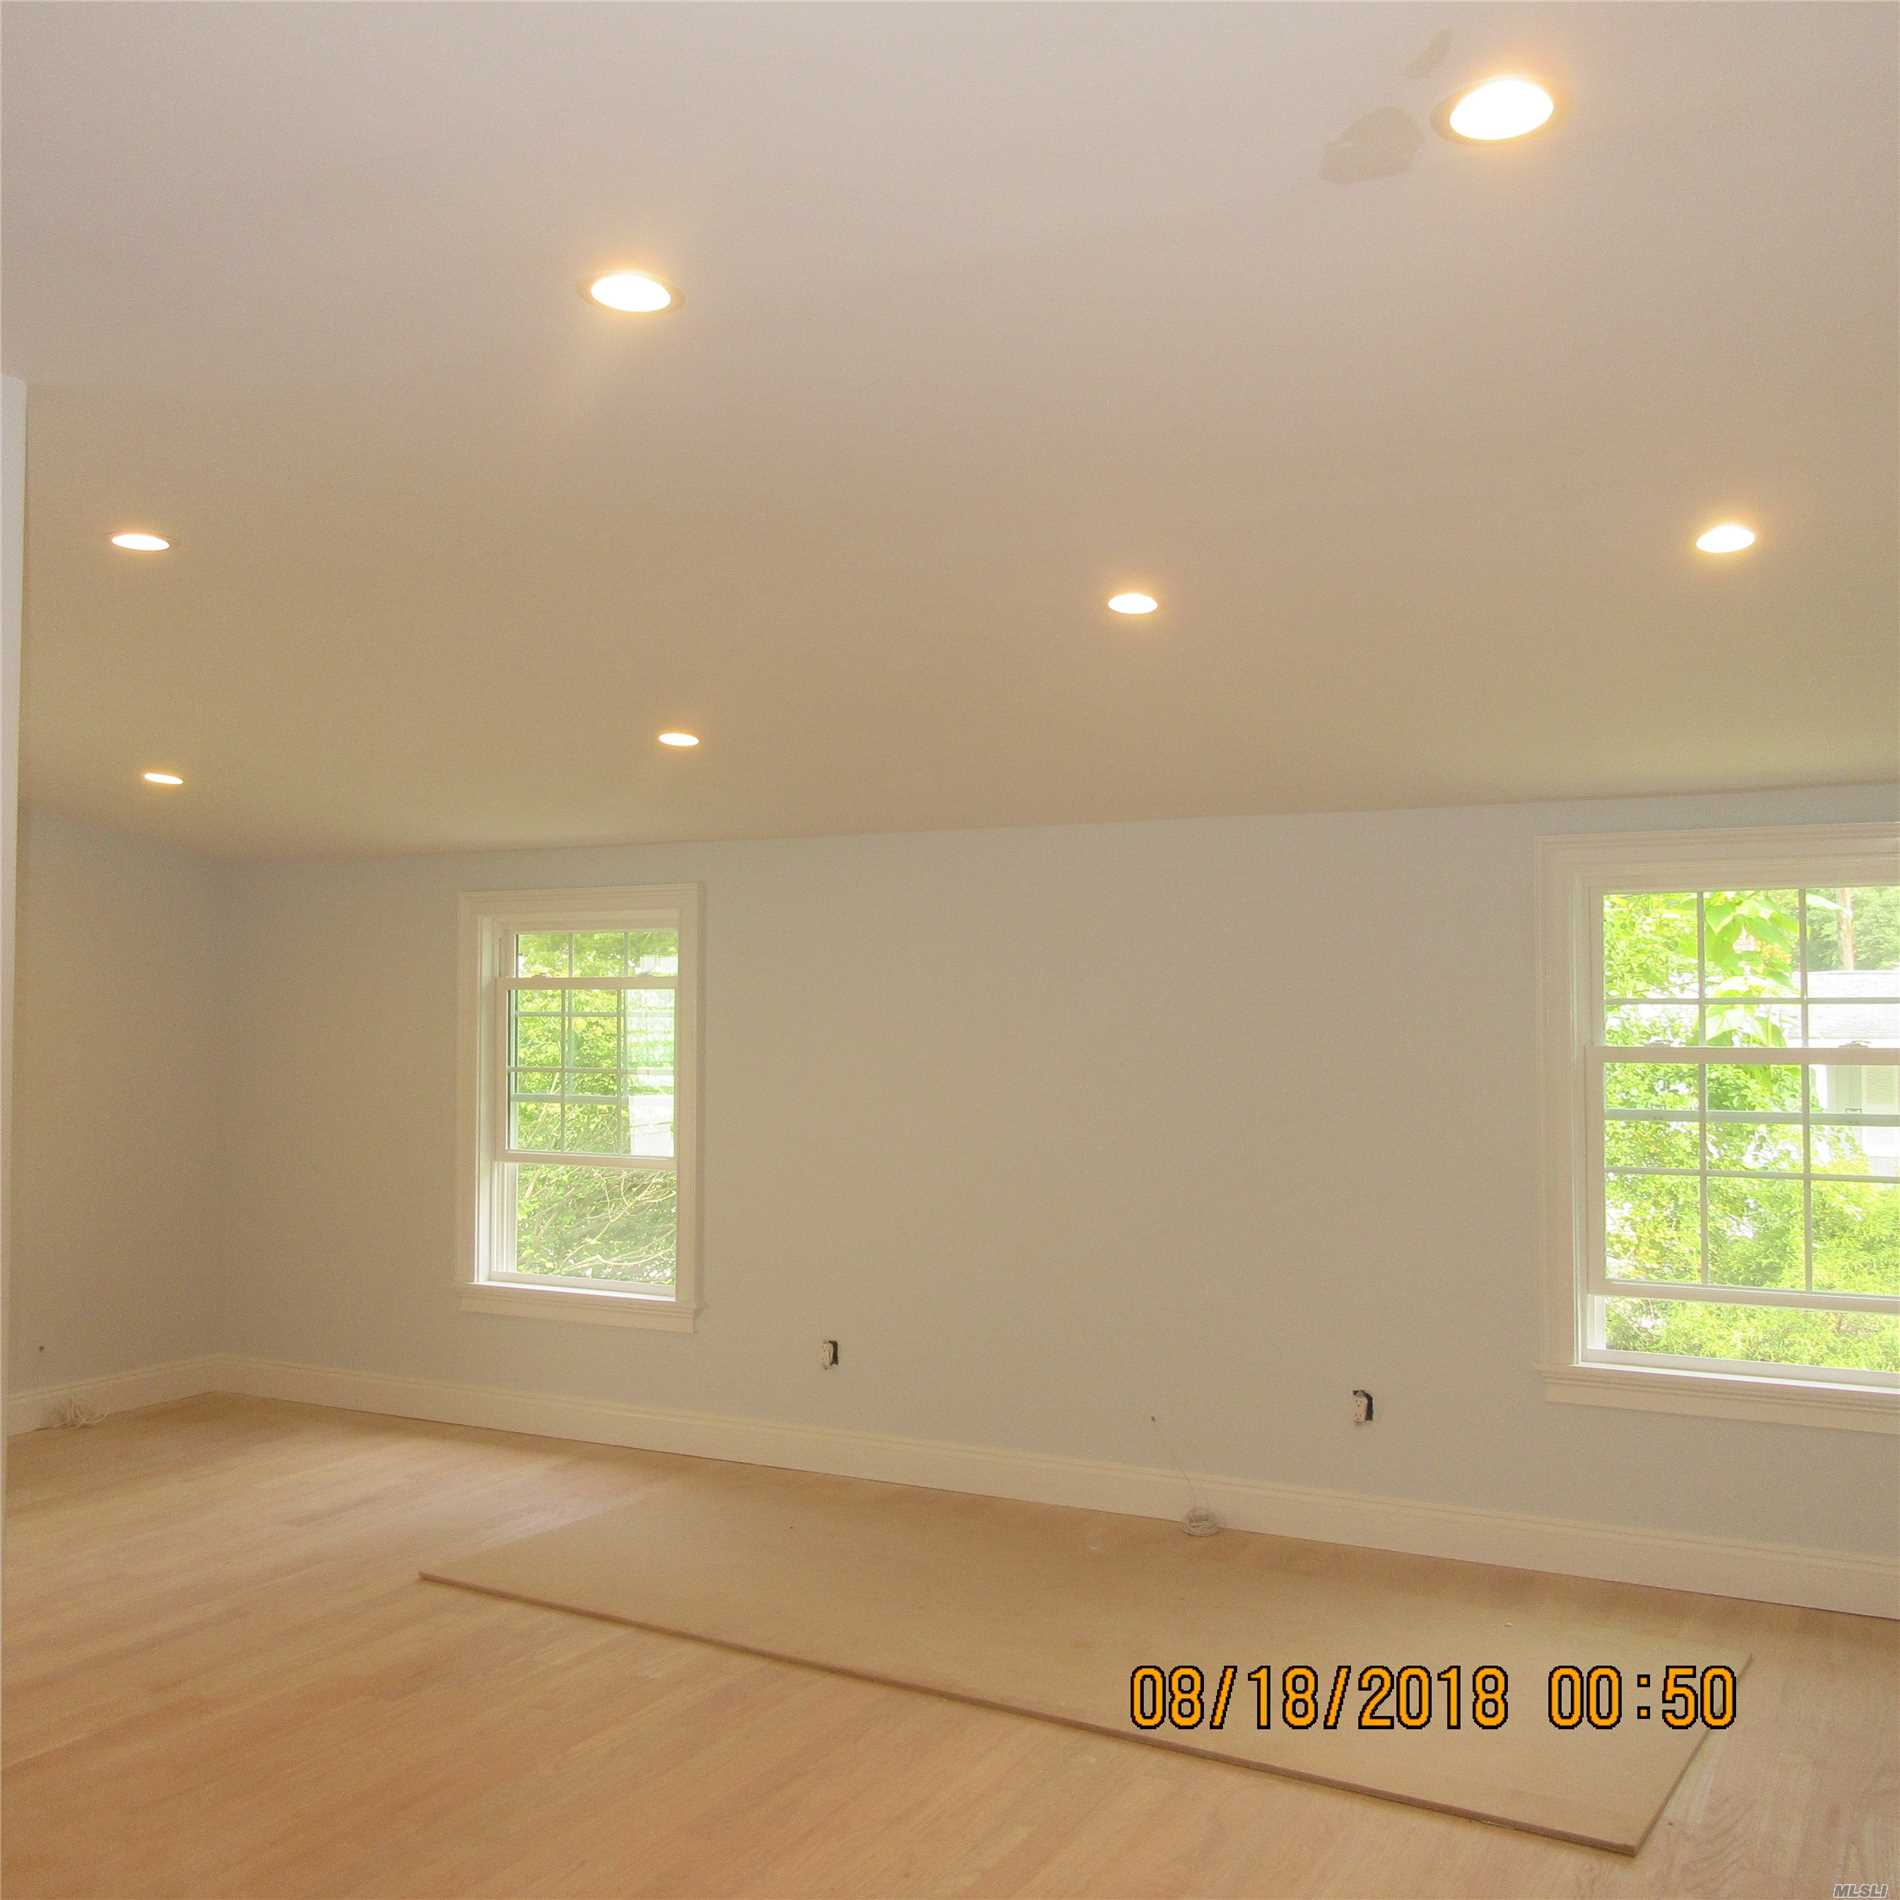 Brand Immaculate Sparkling Newly Renovated House. Remodeled. From Scratchoffering Brand New Everything. Open Layout, New Appliances, New Flooring, Gorgeous Kitchen, Spacious Bedrooms Including A Master Suite. Beautiful Quiet Neighborhood , Sachem School District, Sewers No Cesspool, Low Taxes. Pictures Soon But Come Down And See This Incredible House.